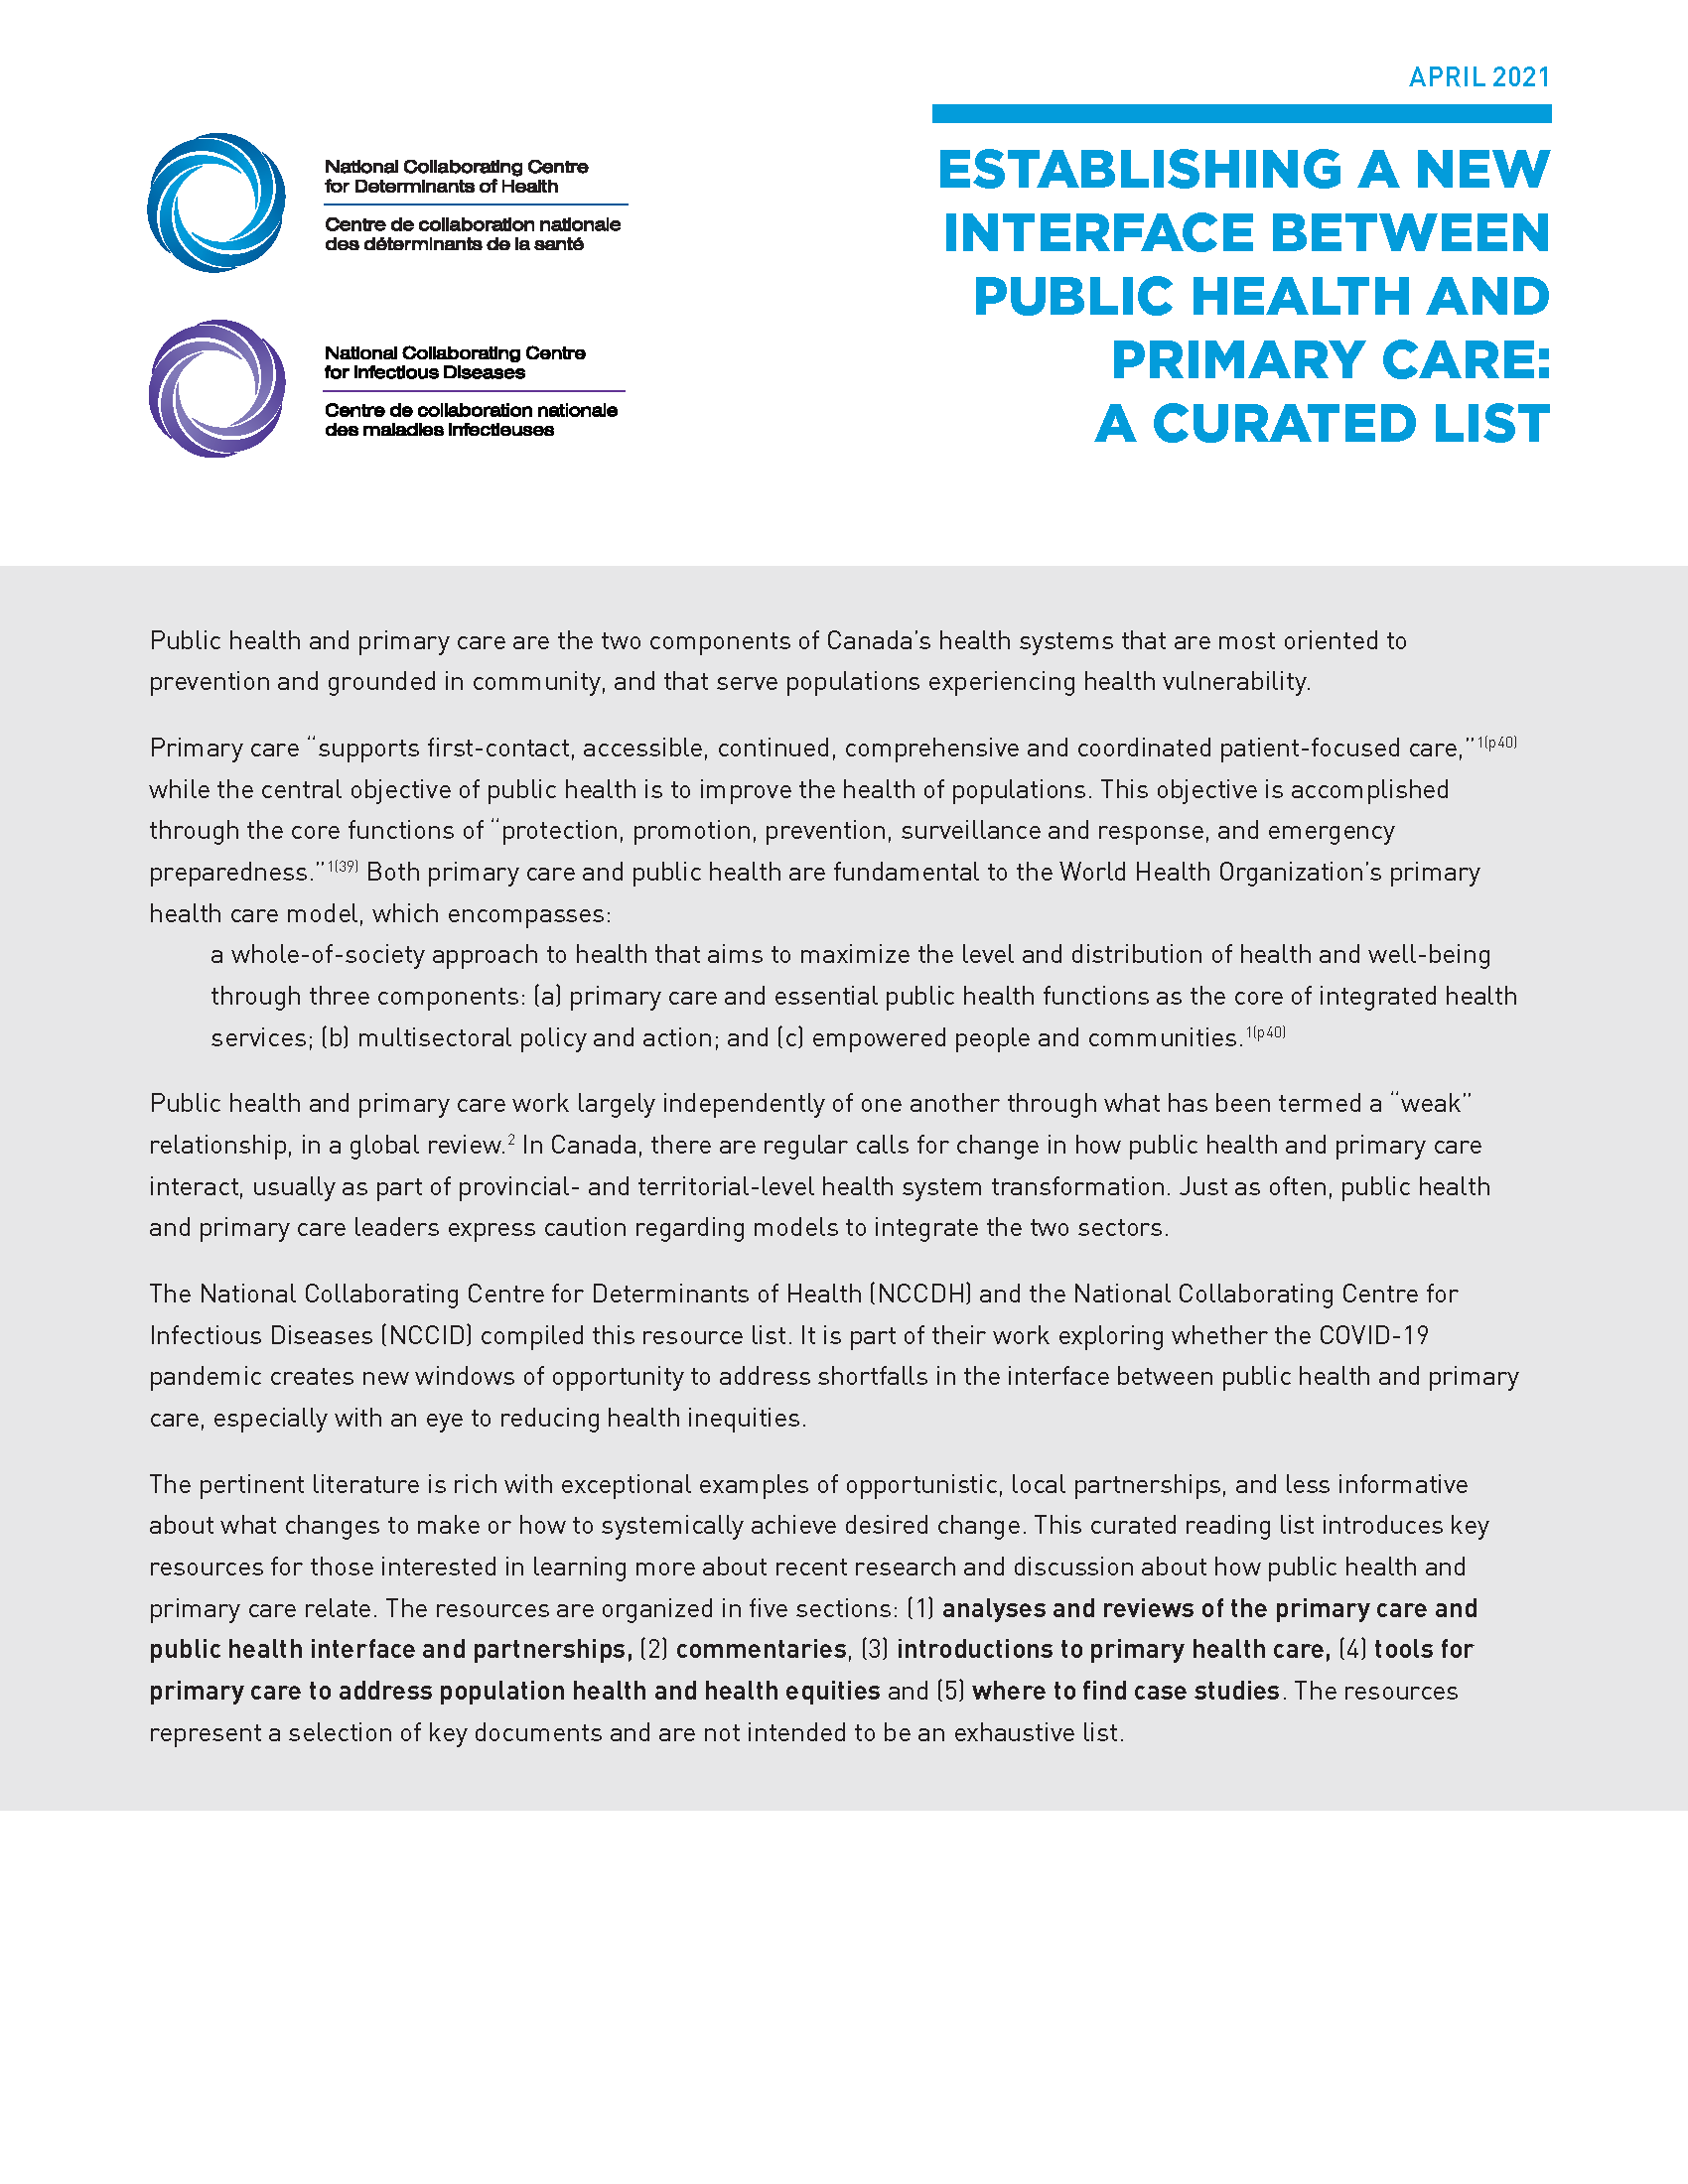 Establishing a new interface between public health and primary care: A curated list